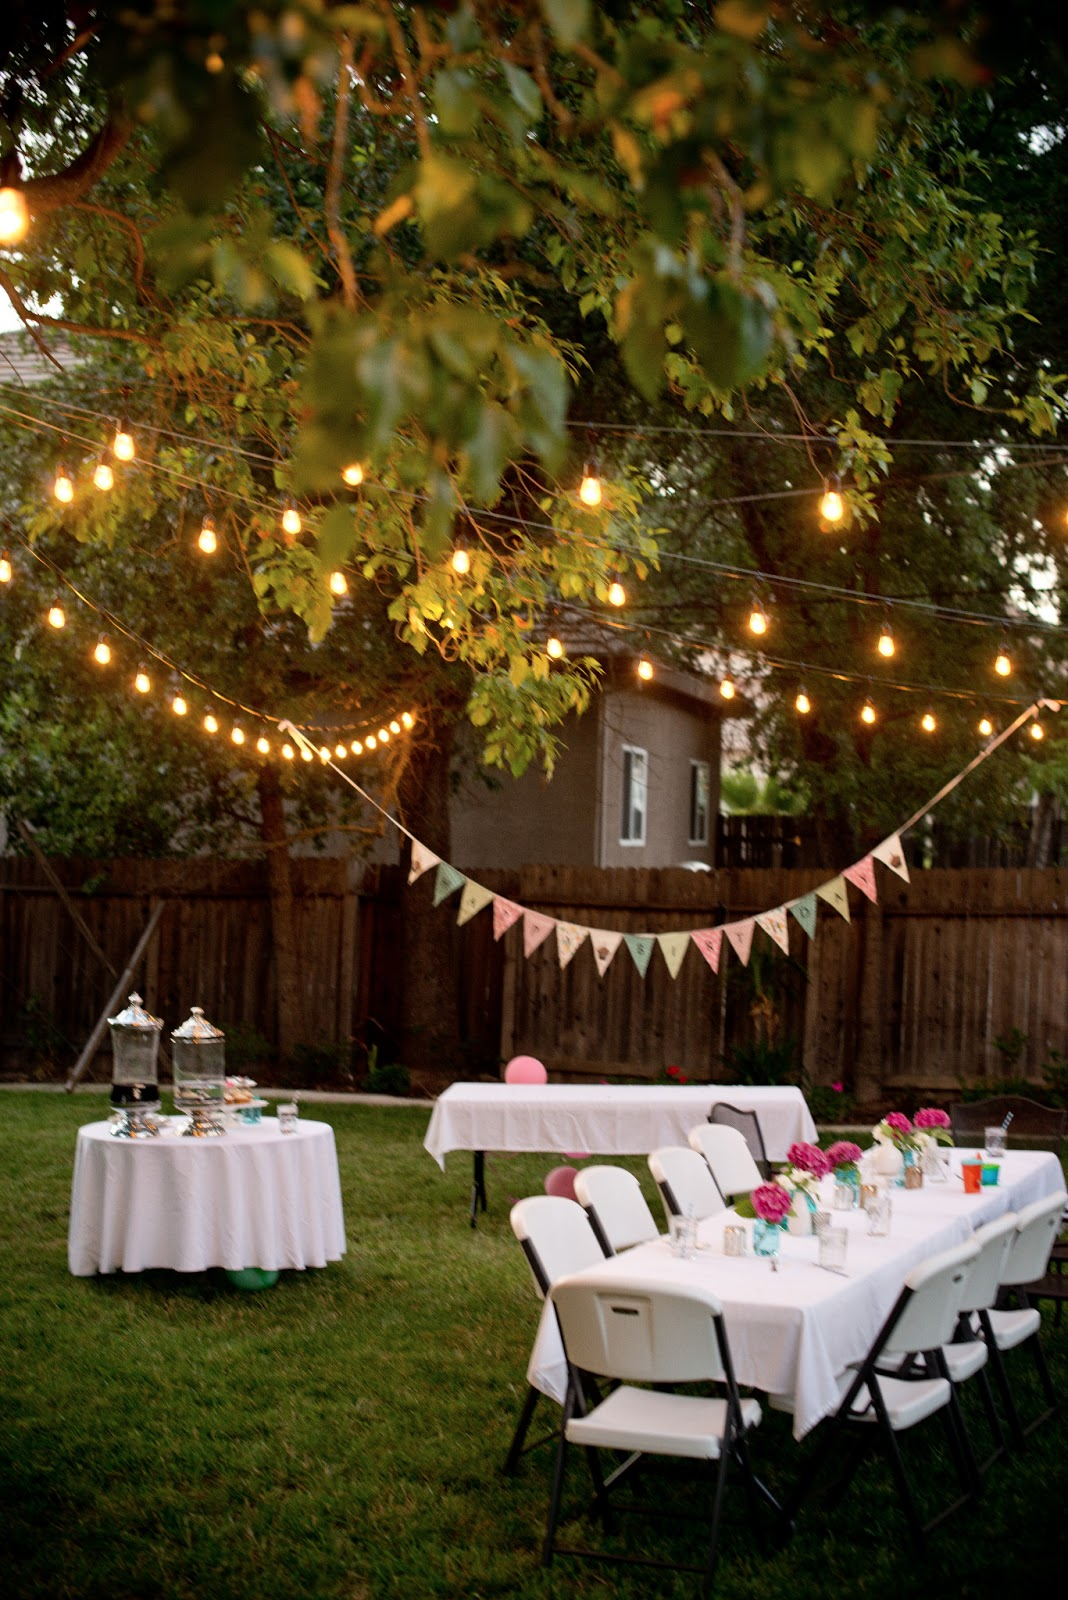 Decorations For Backyard Party : Displaying 17> Images For  Backyard Party Ideas